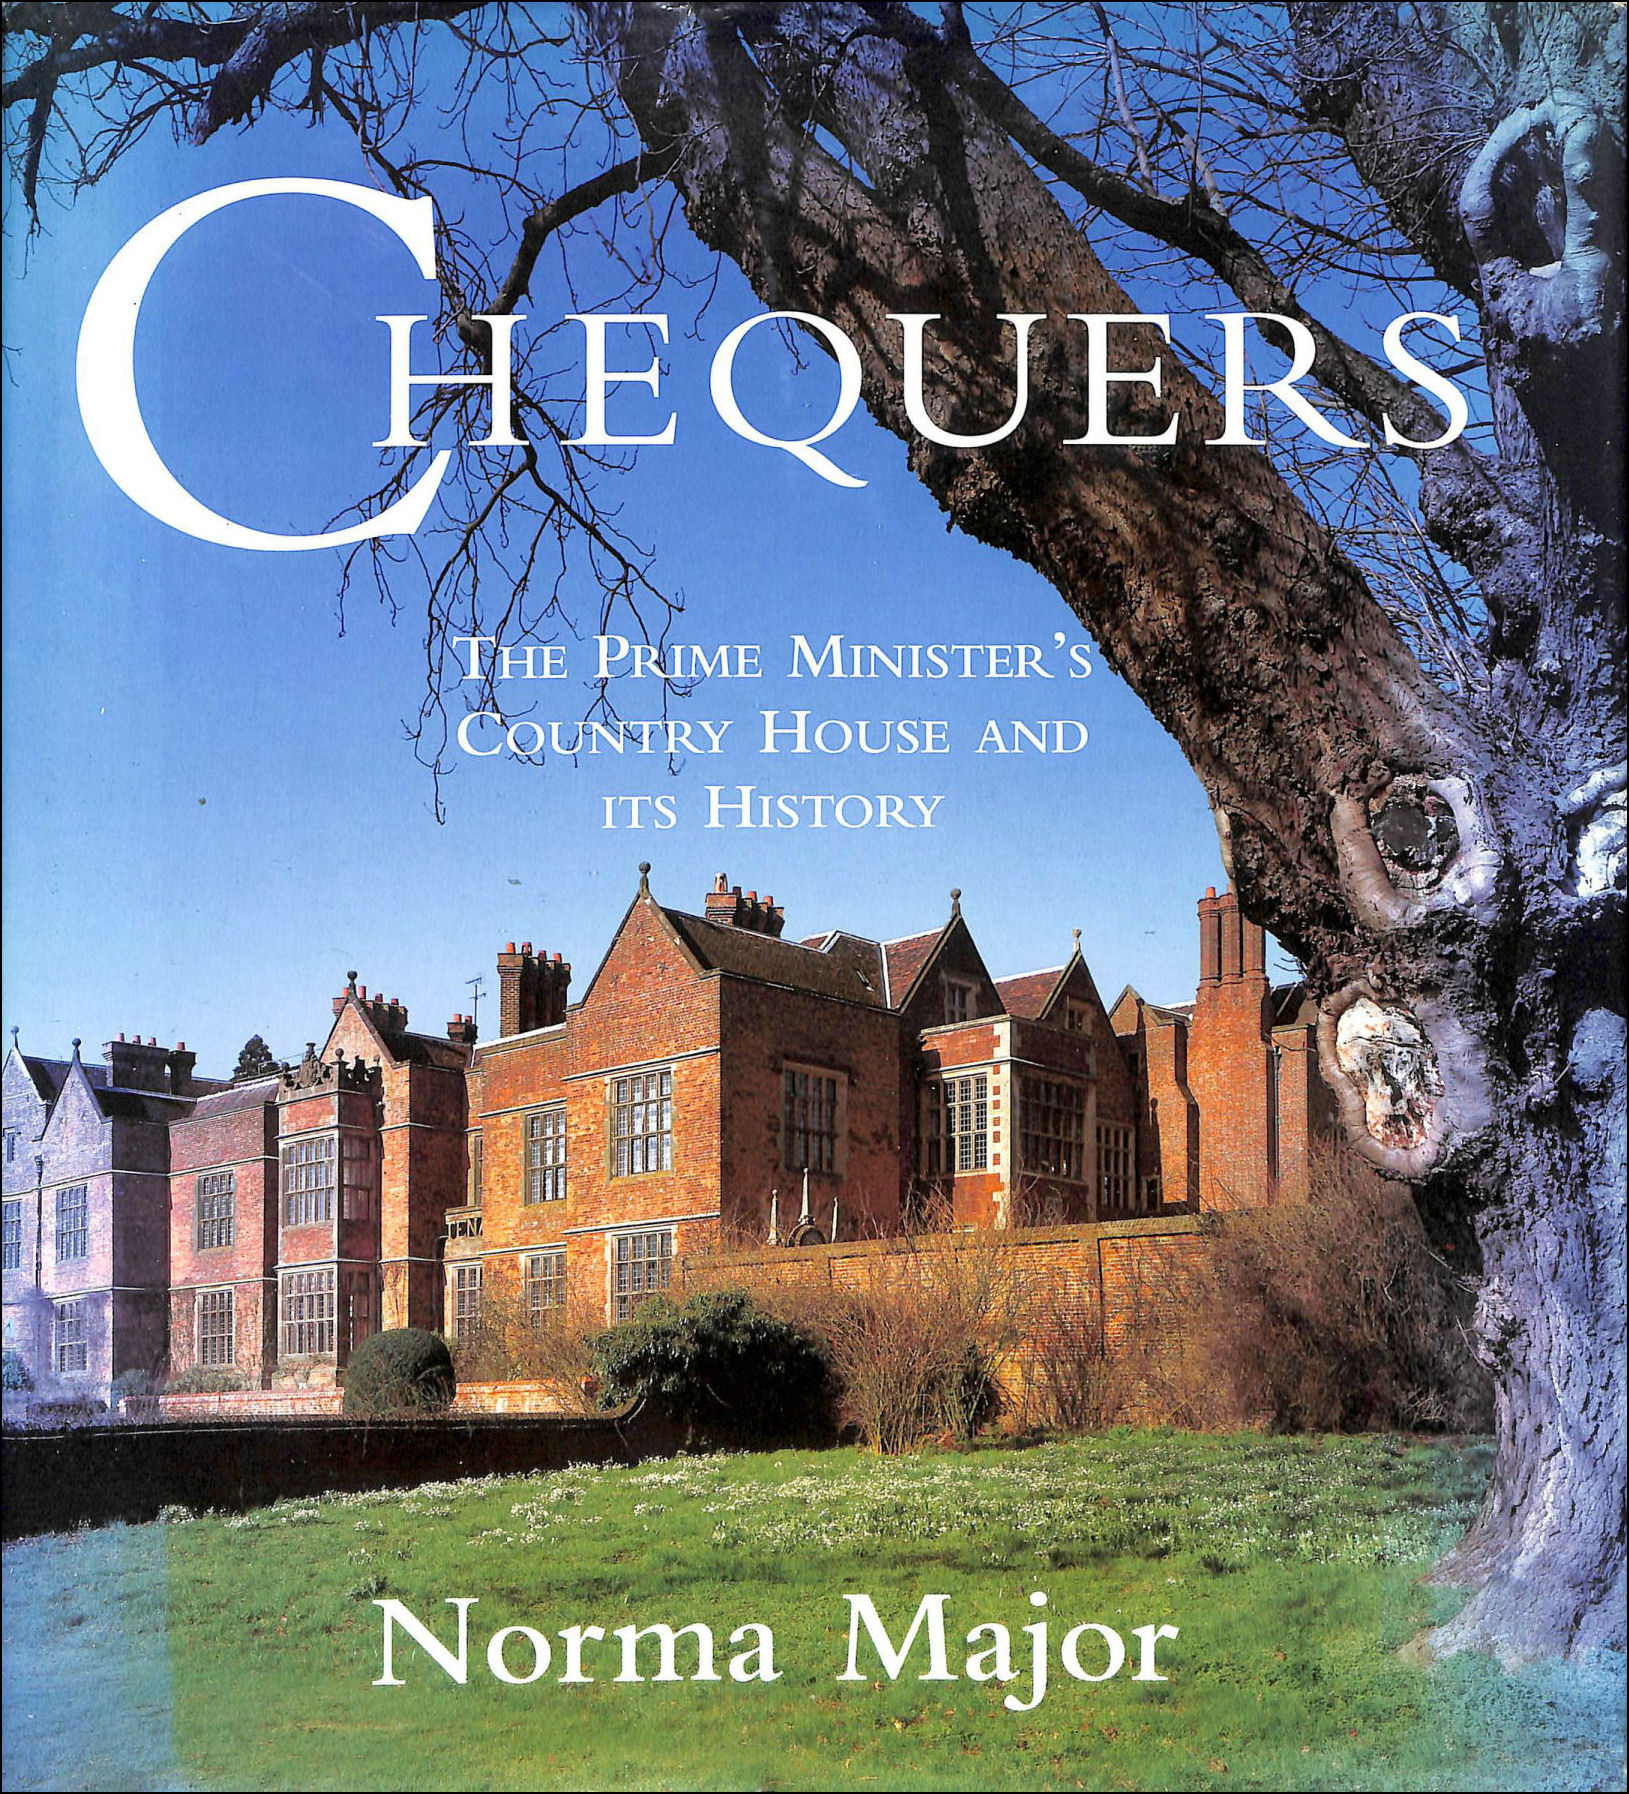 Image for Chequers: The Prime Minister's Country House And Its History